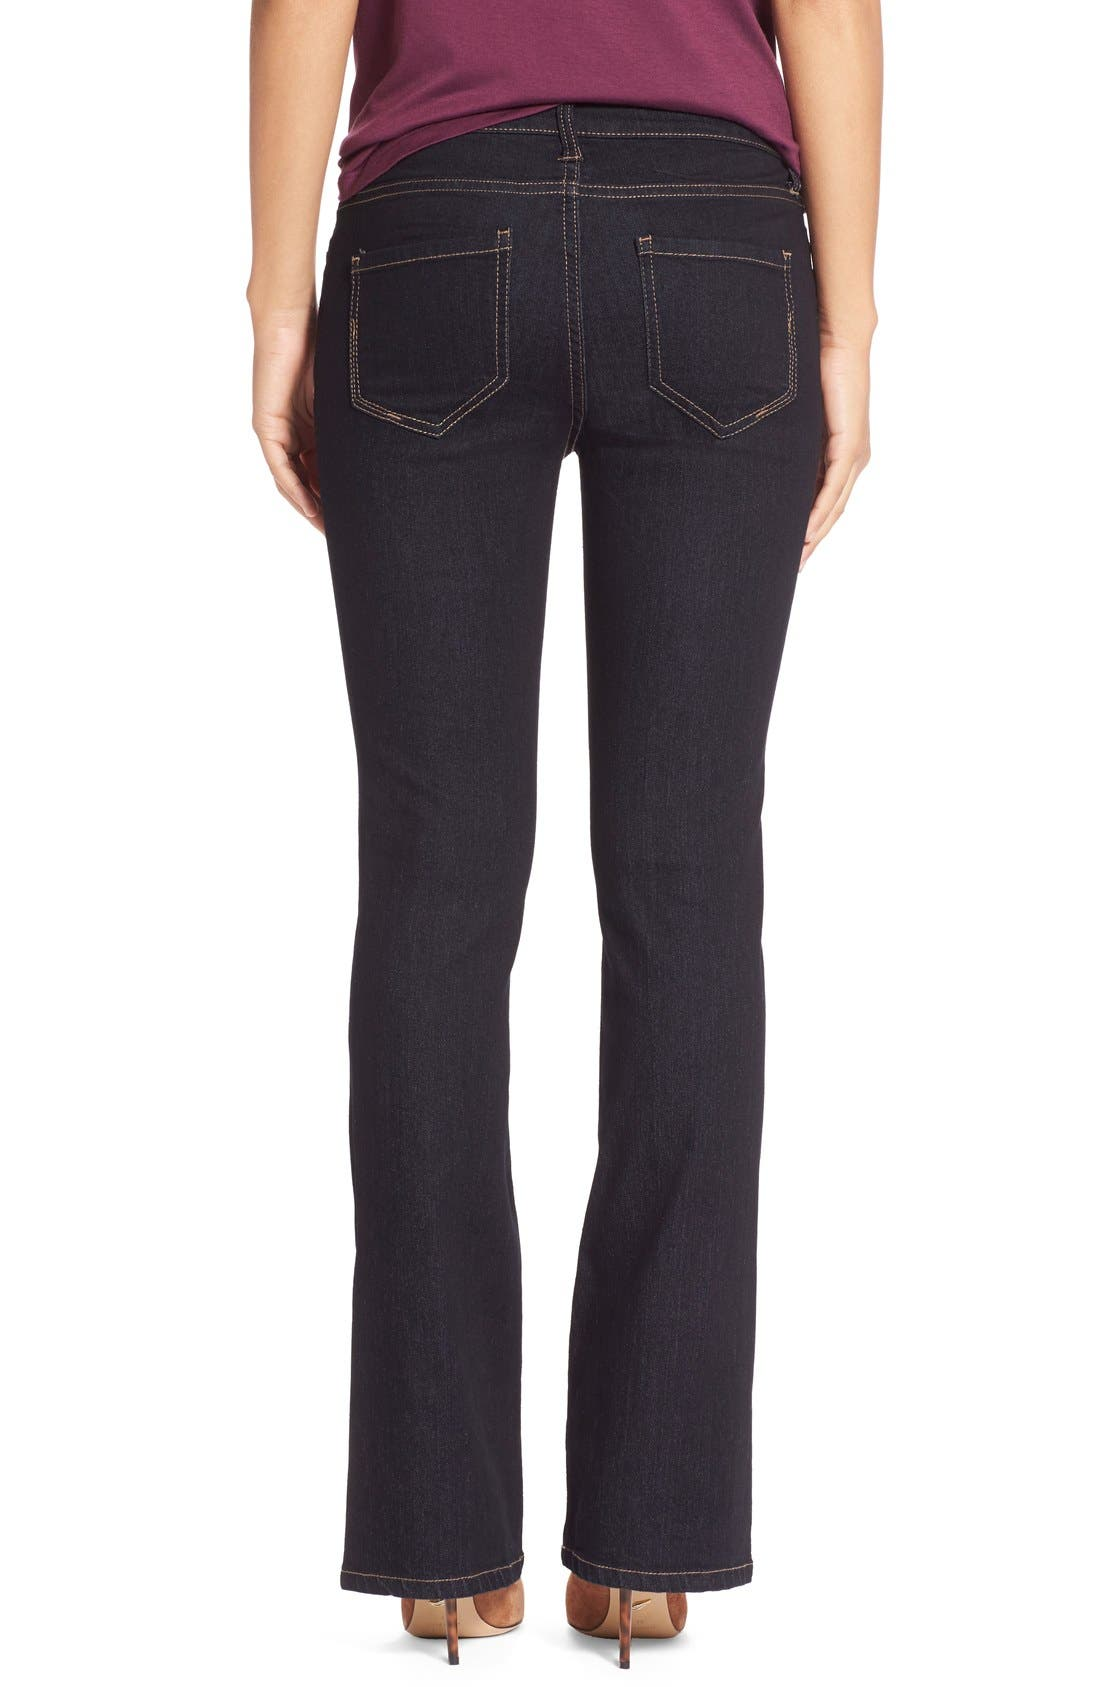 Lucy Stretch Bootcut Jeans,                             Alternate thumbnail 2, color,                             Indigo Rinse